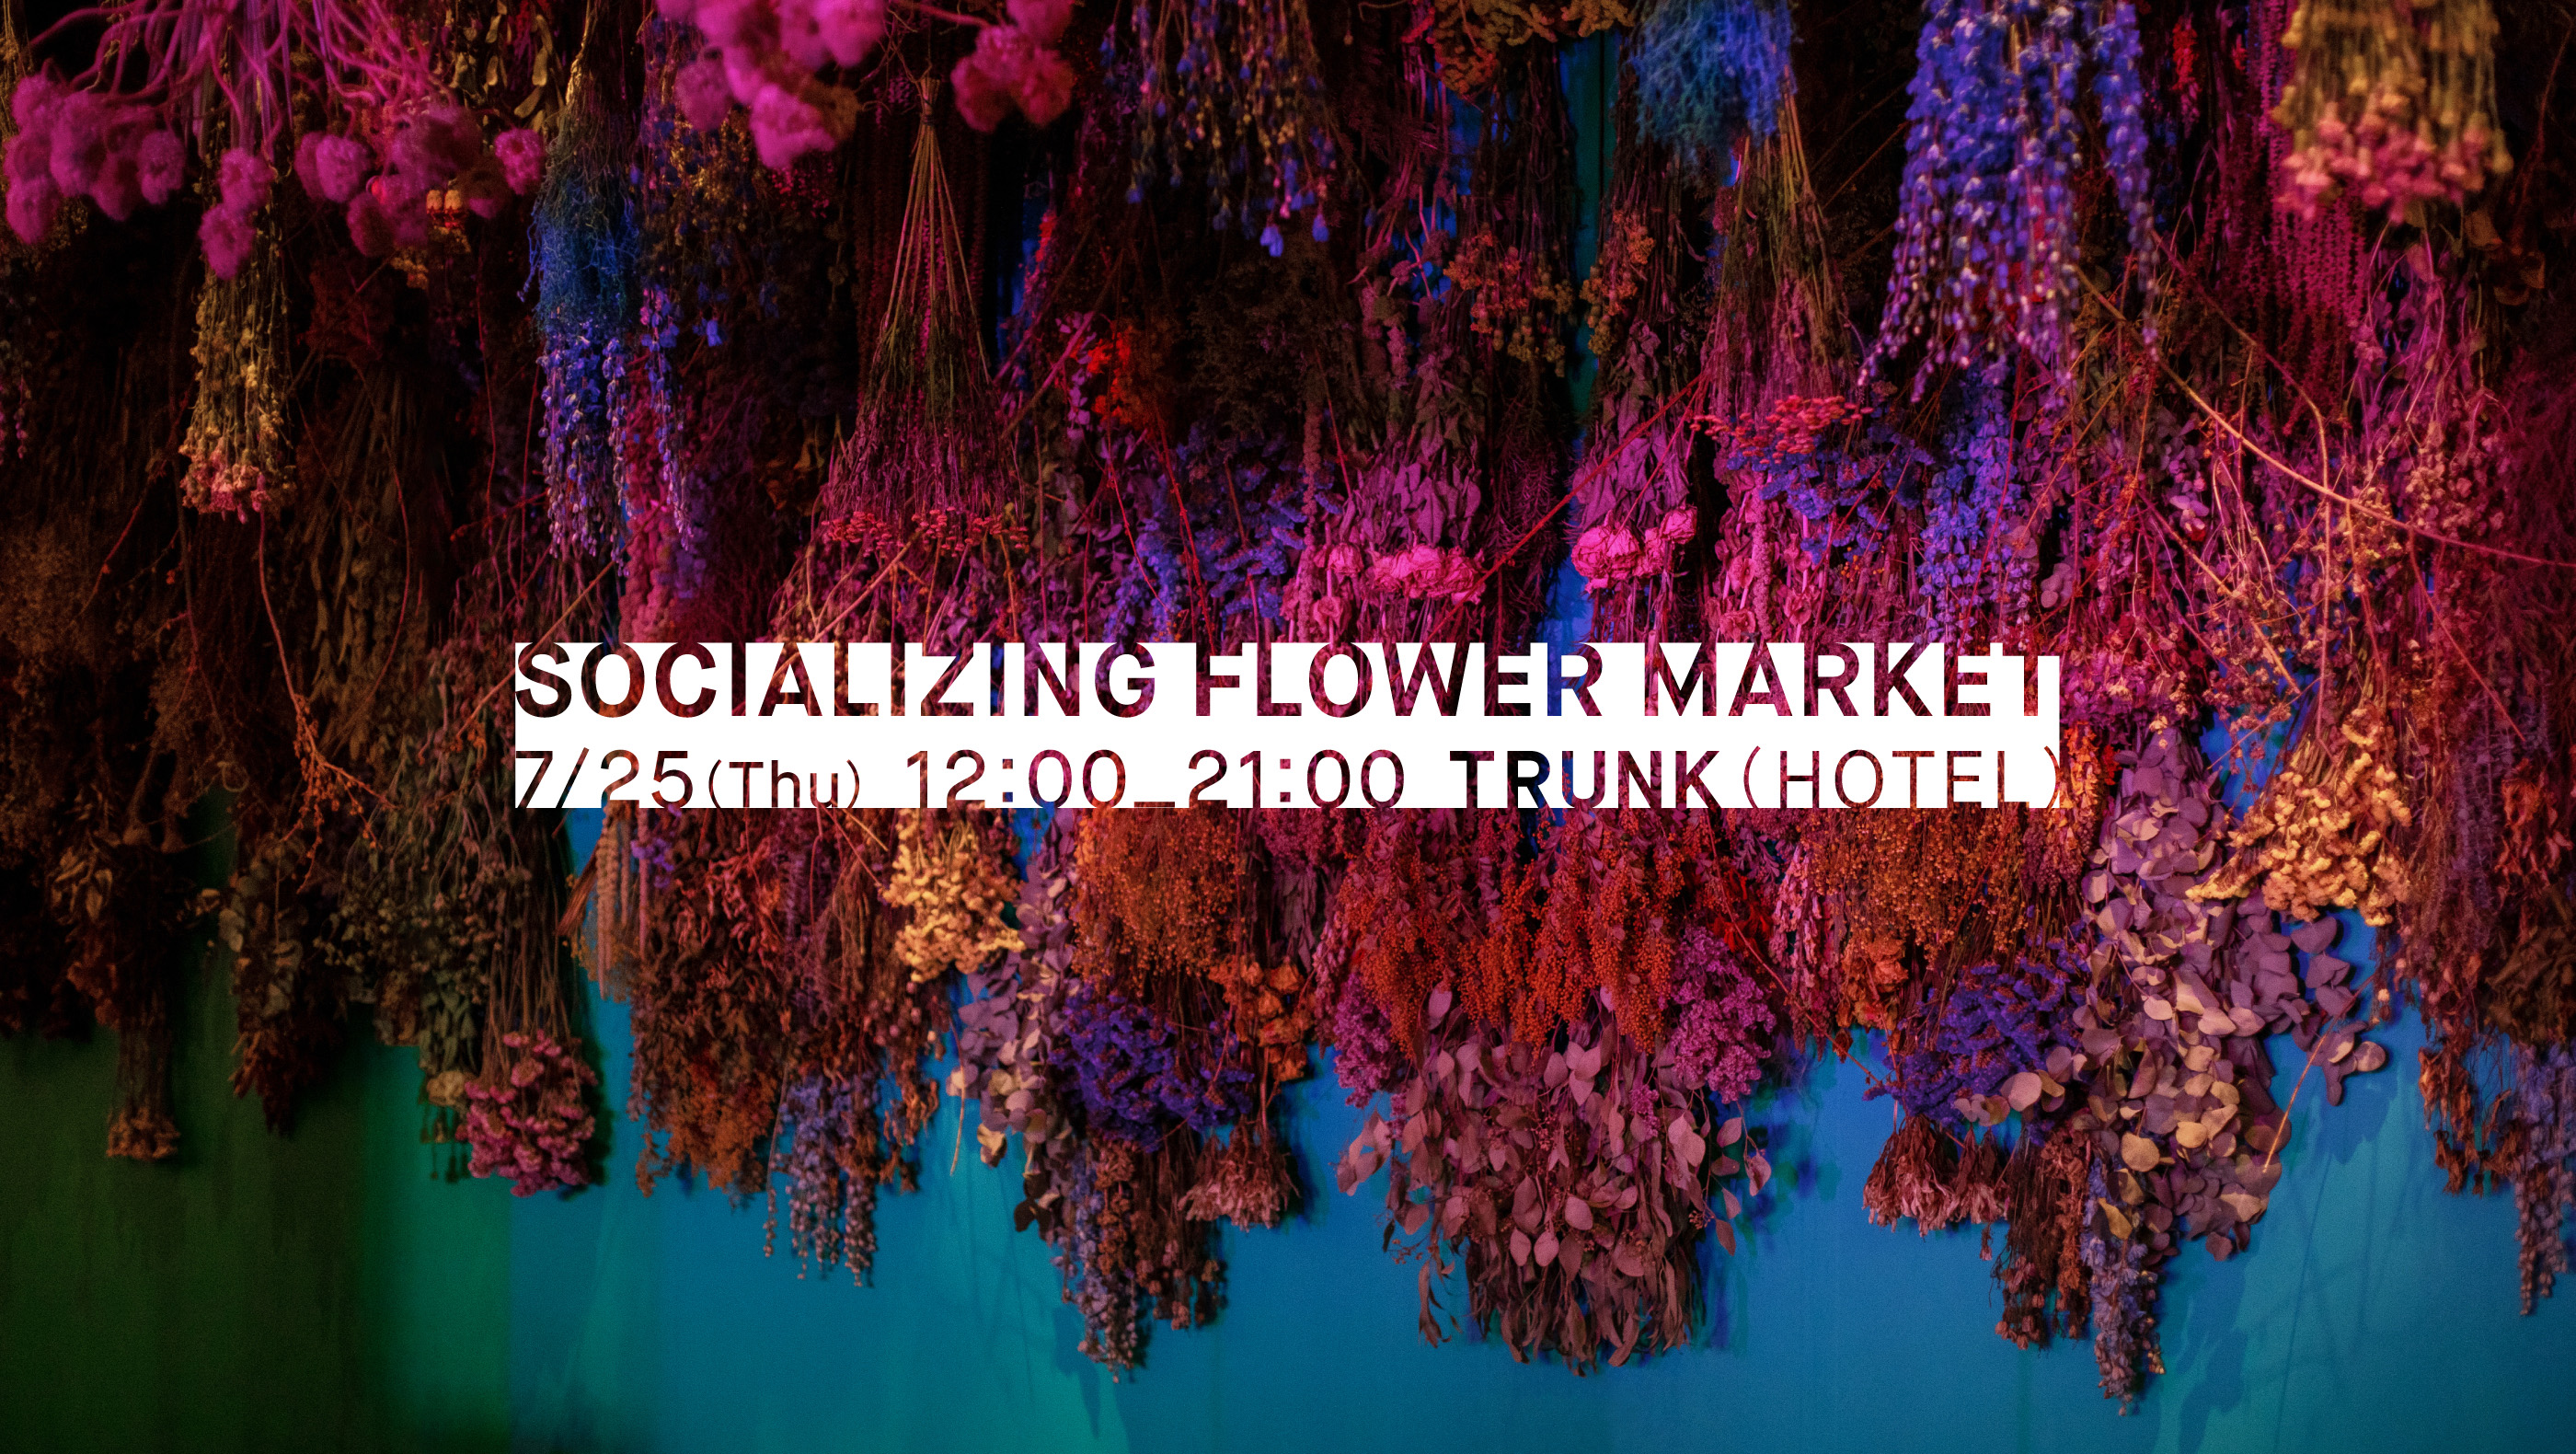 SOCIALIZING FLOWER MARKET